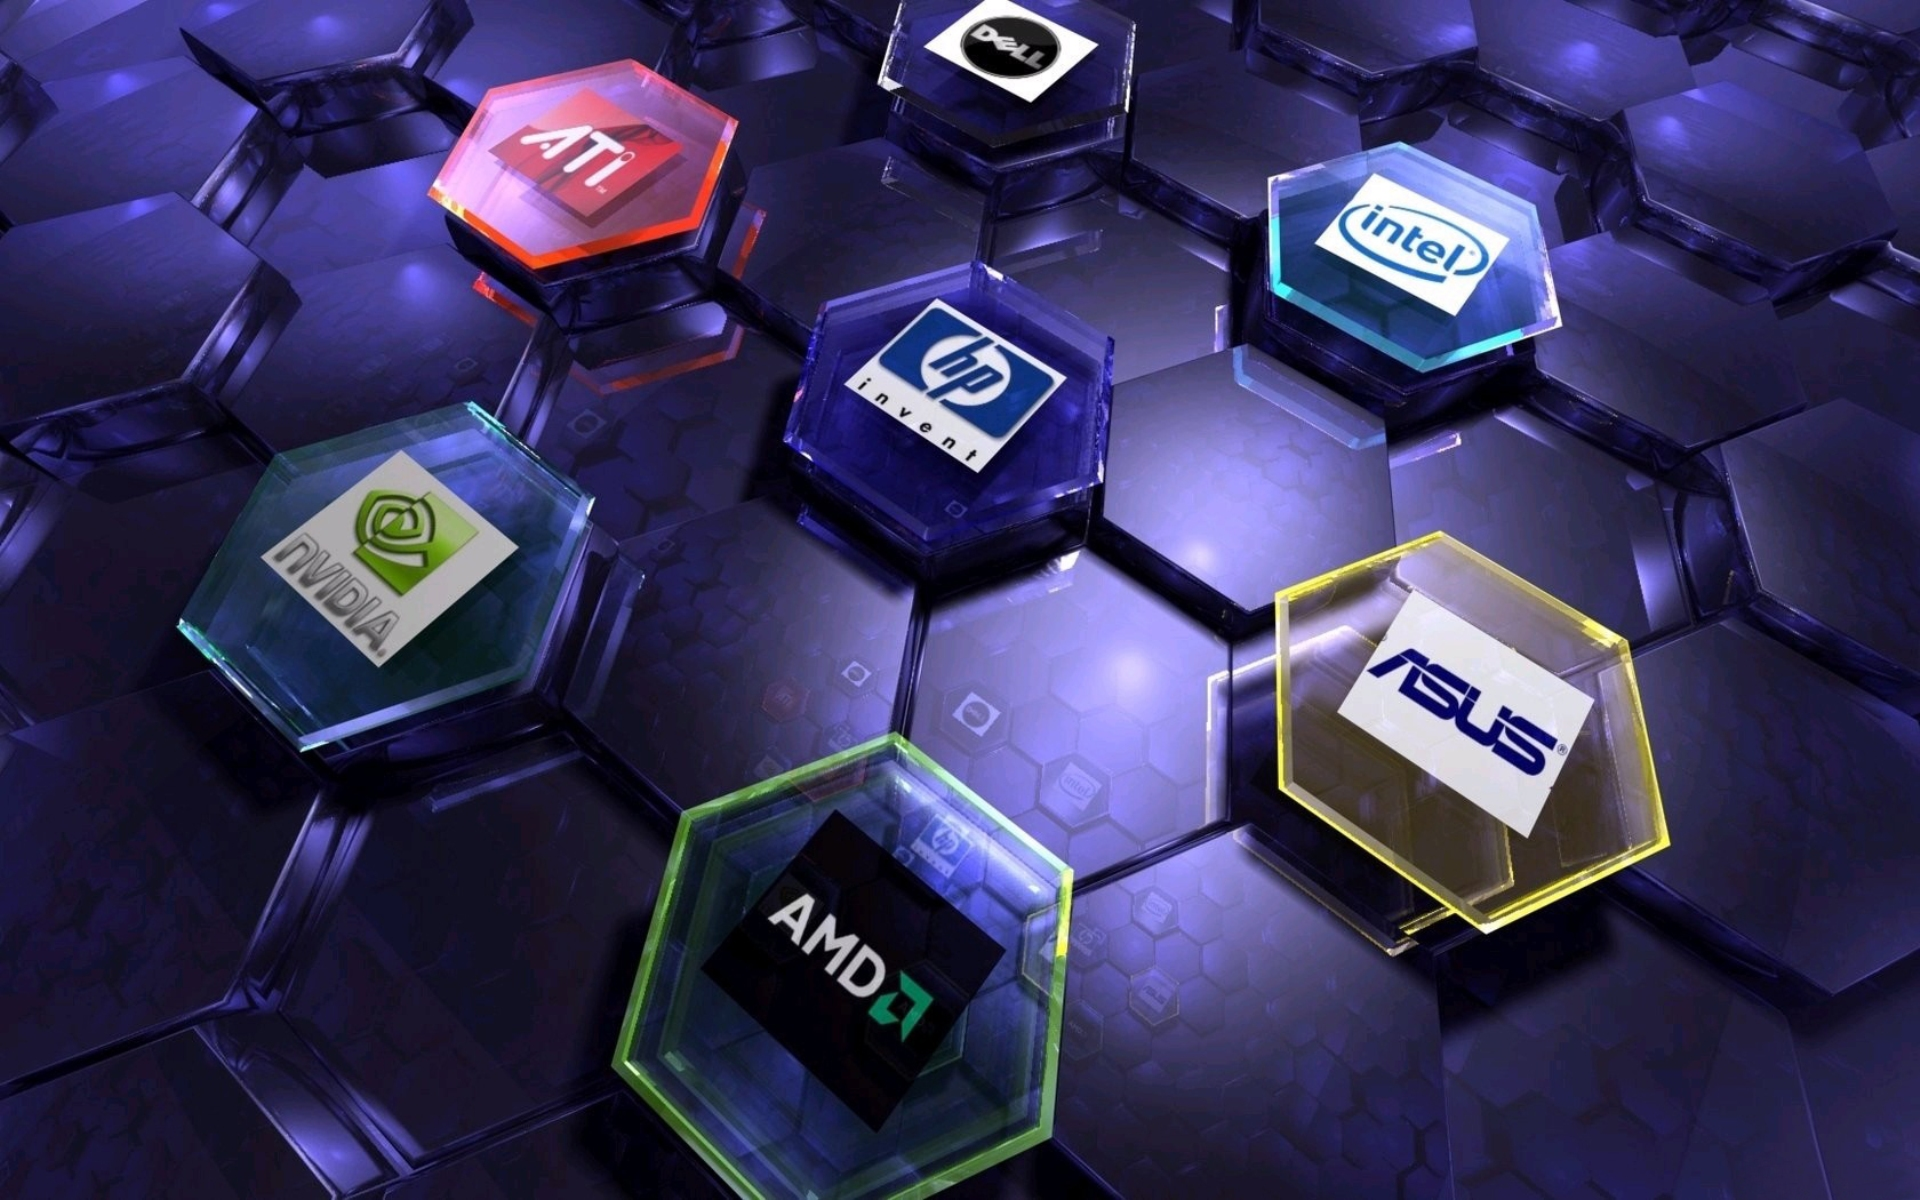 Processor phenom amd wallpaper animated background computers picture - Computer Hd Wallpapers 47 Wallpapers